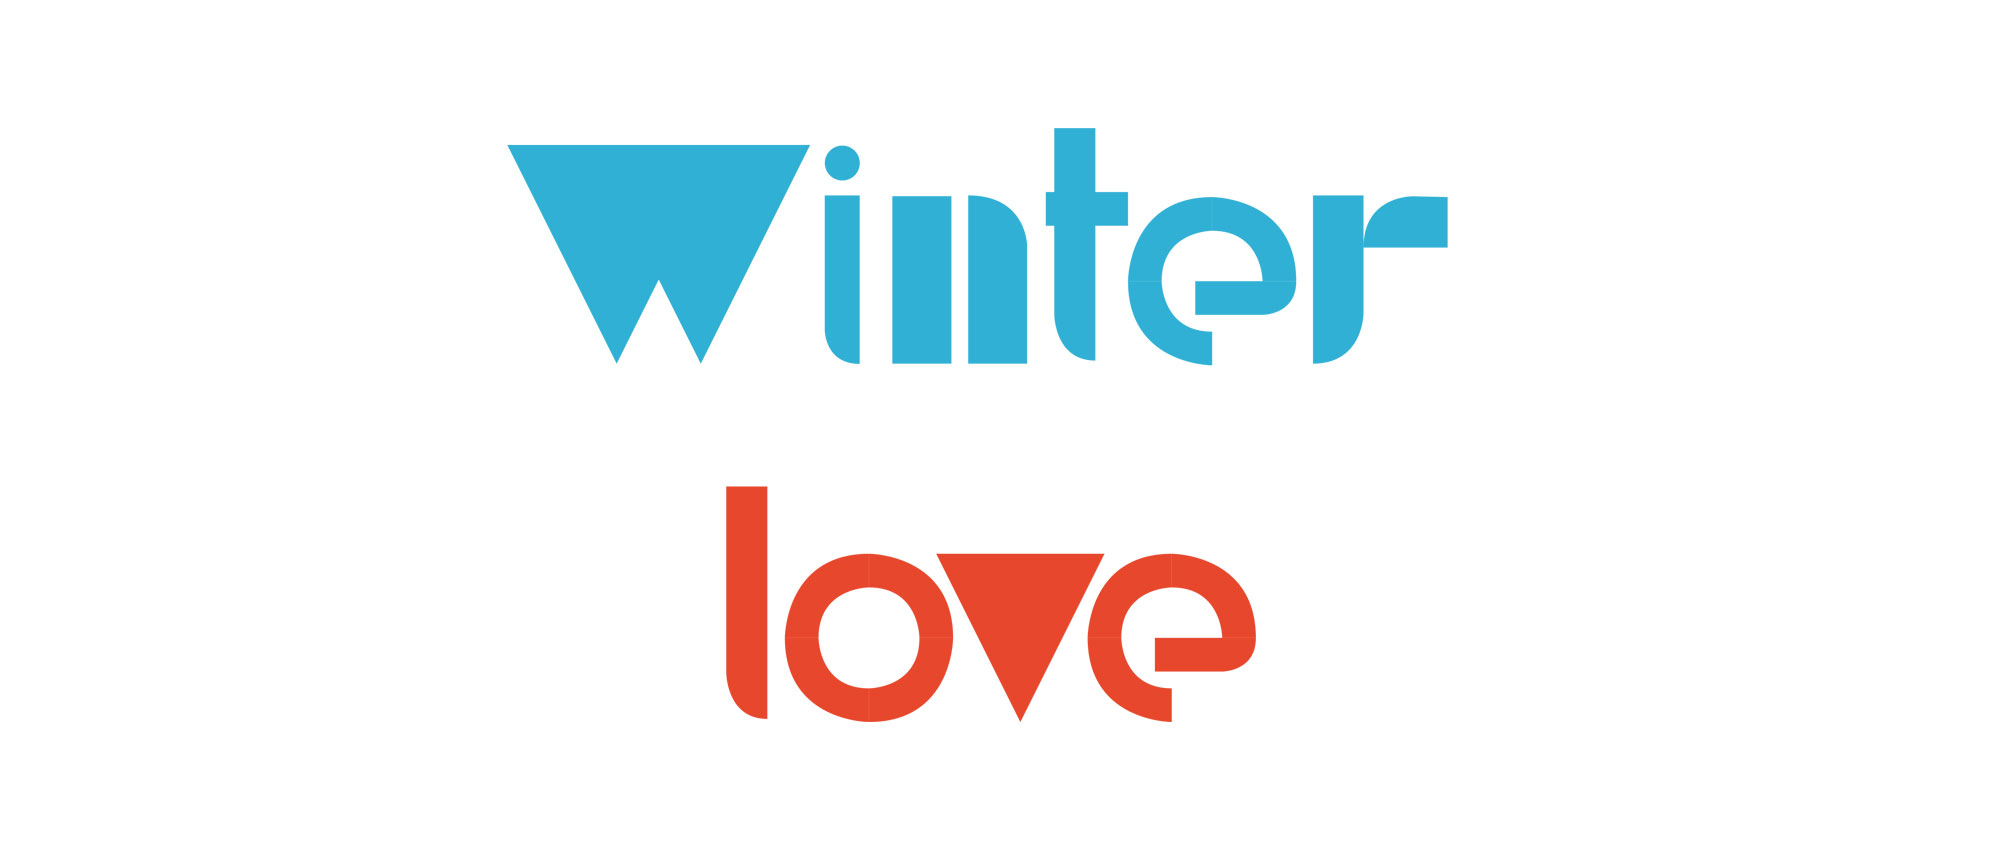 Winter and love text